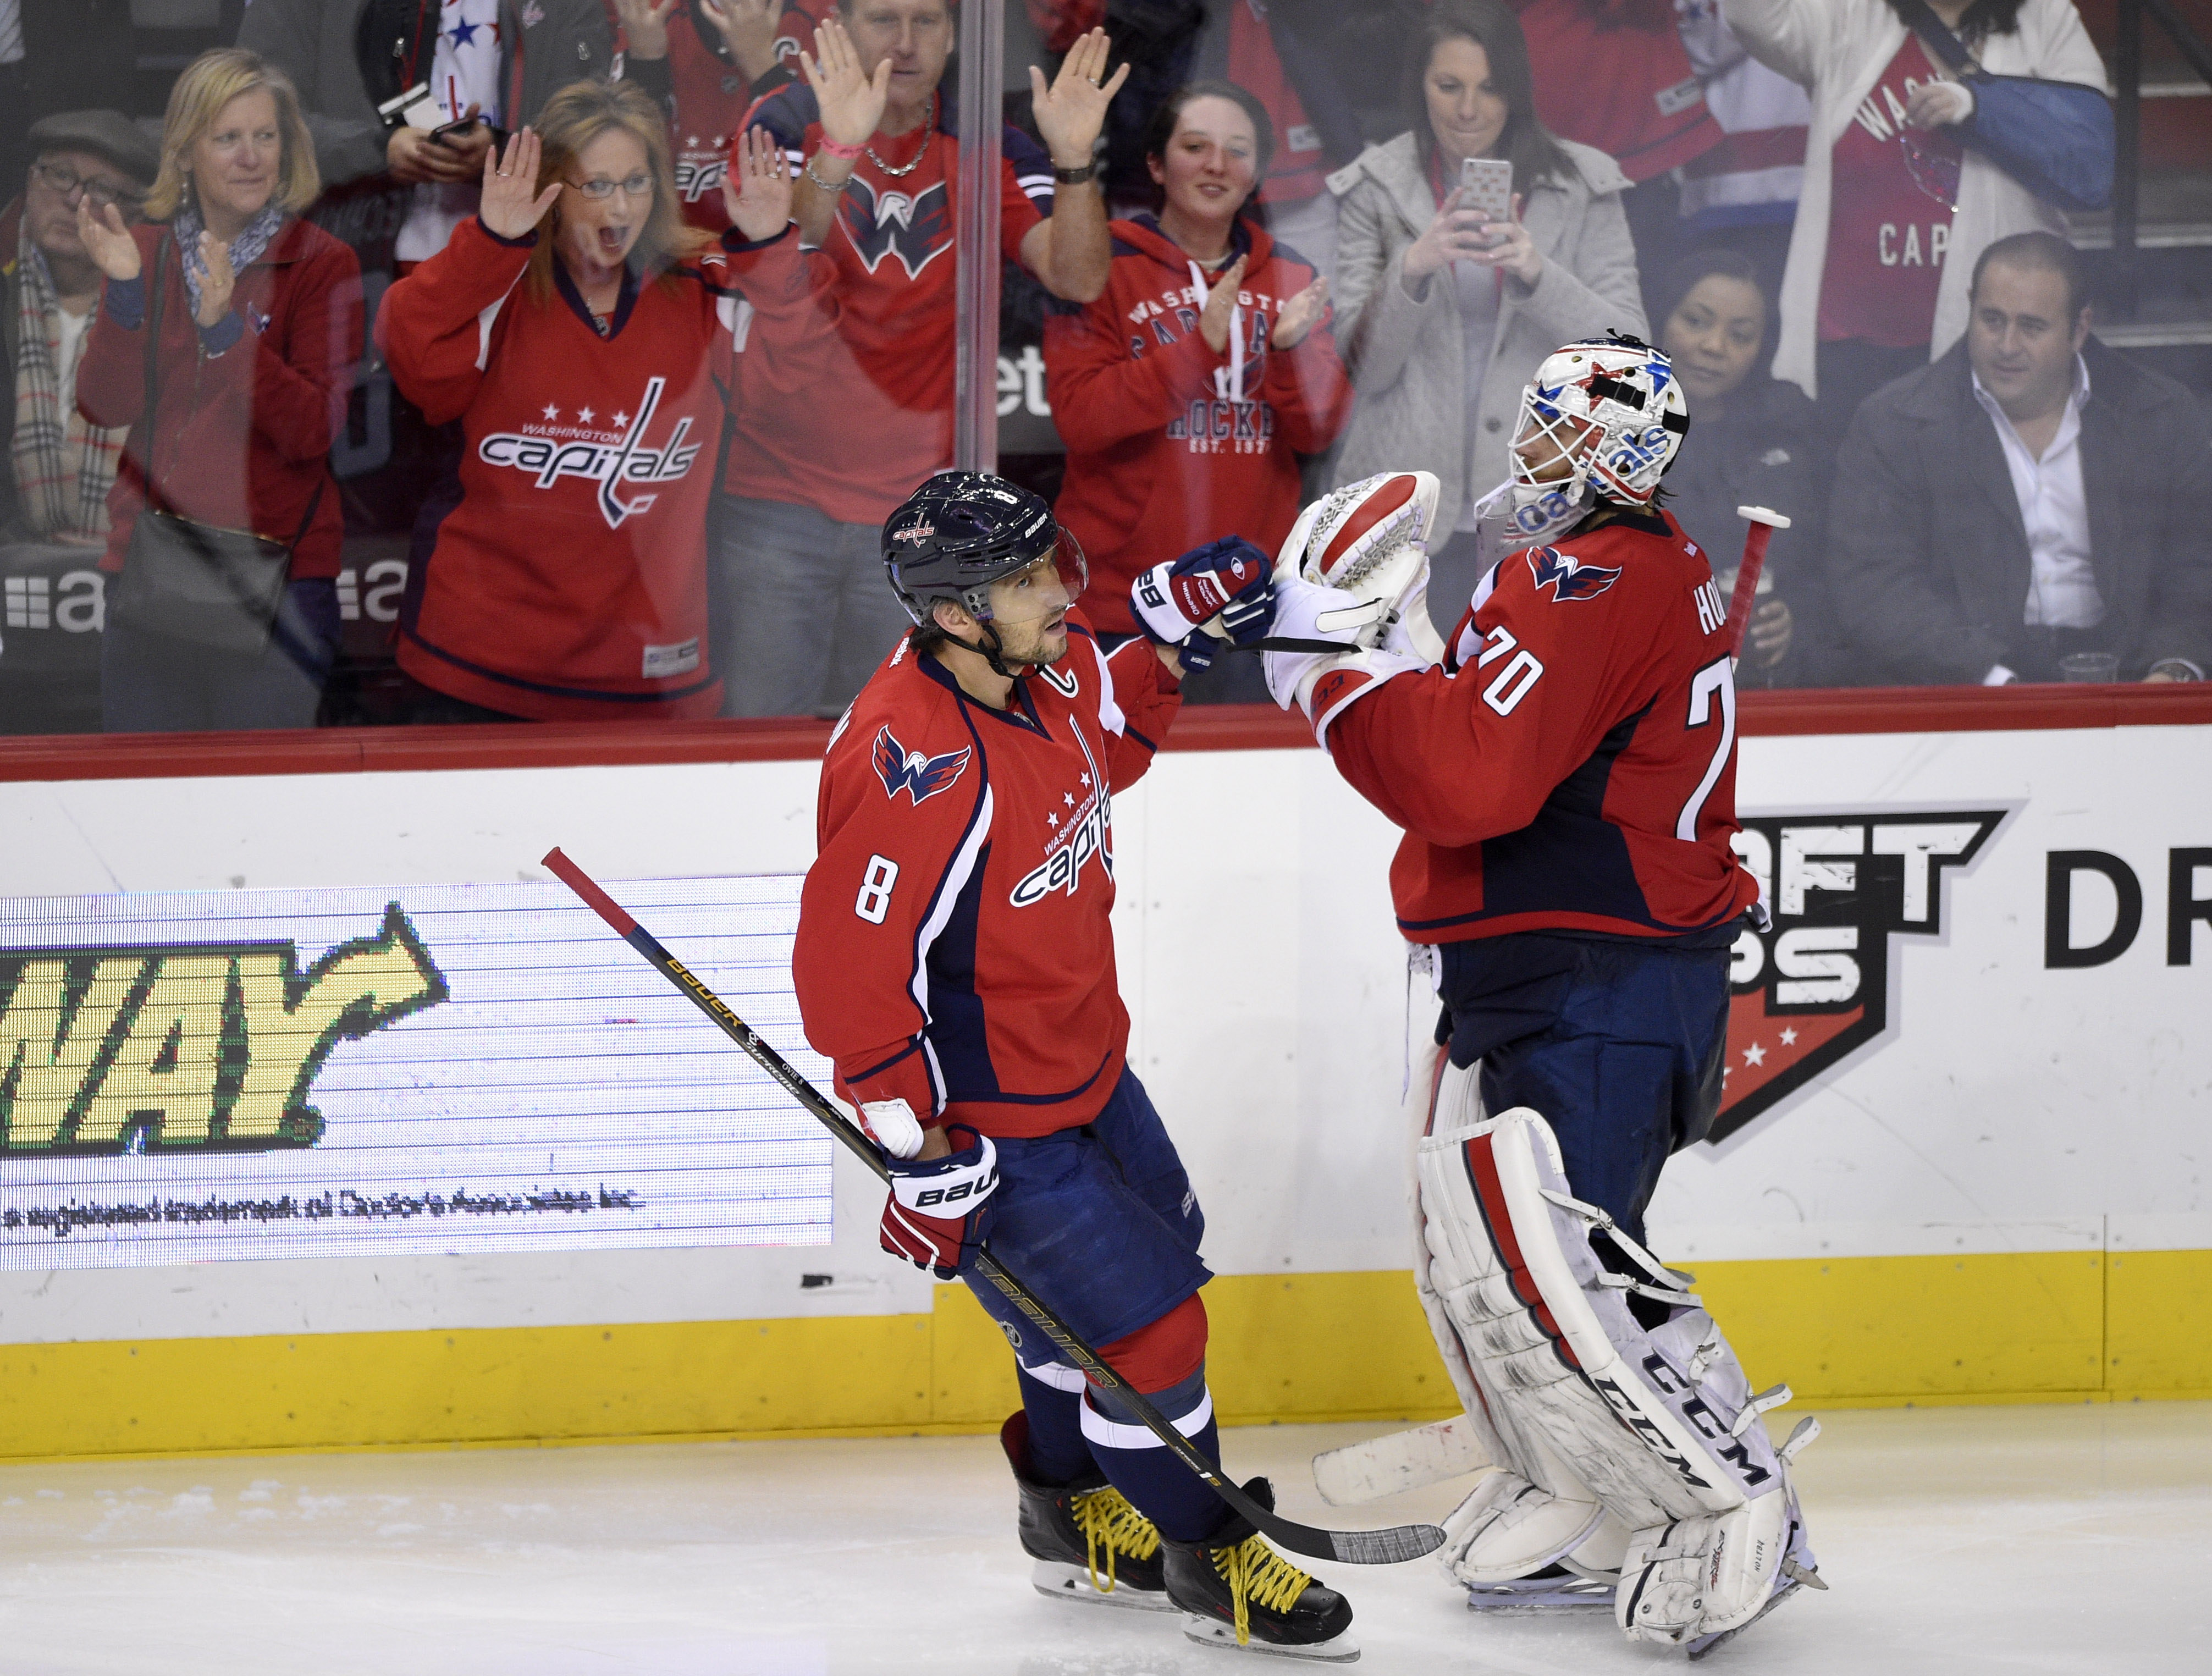 Alexander Ovechkin, Braden Holtby selected for NHL All-Star Game